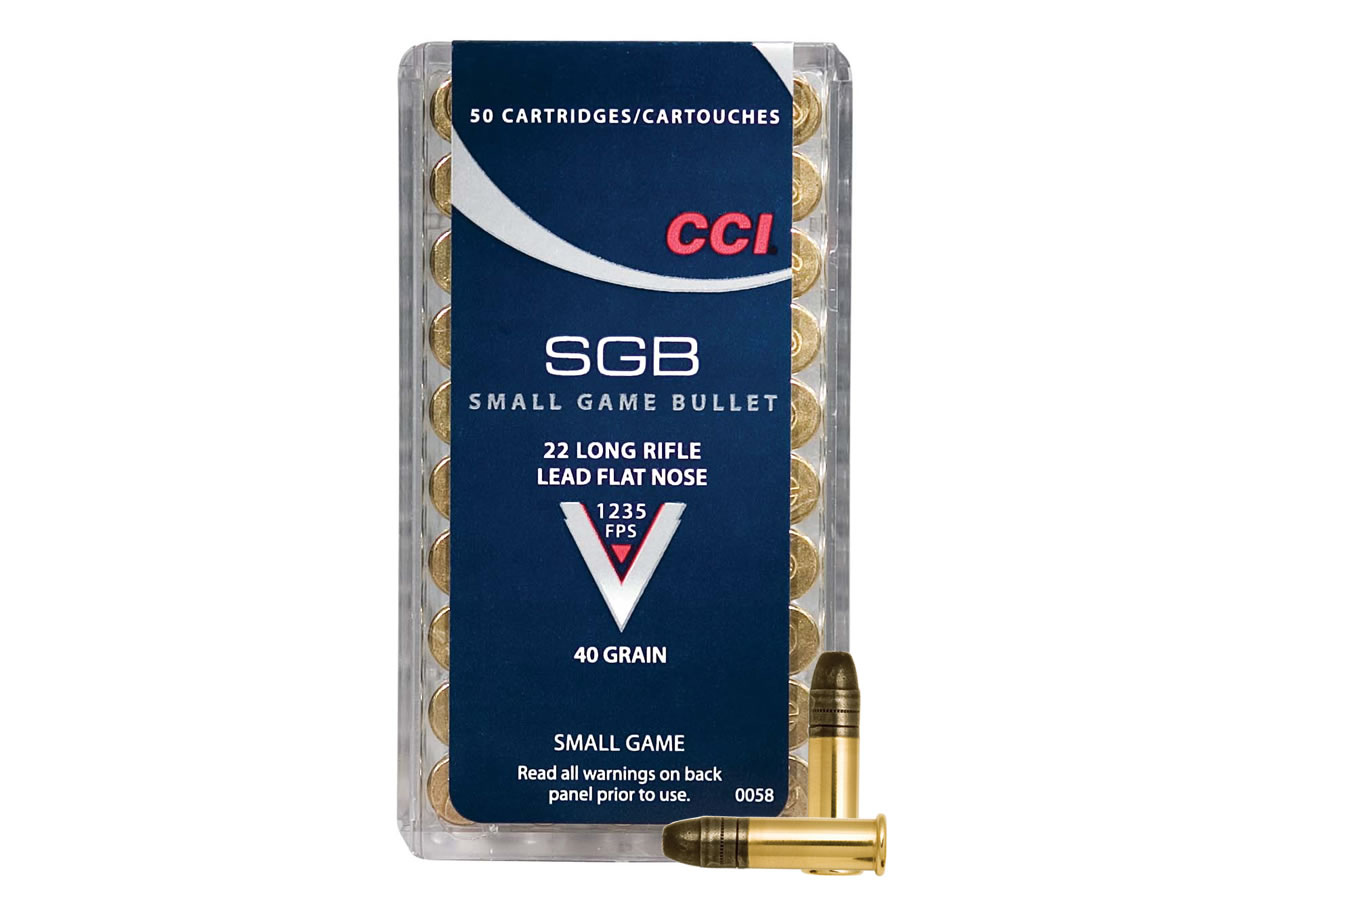 22 LR SMALL GAME BULLET 40 GR LFN